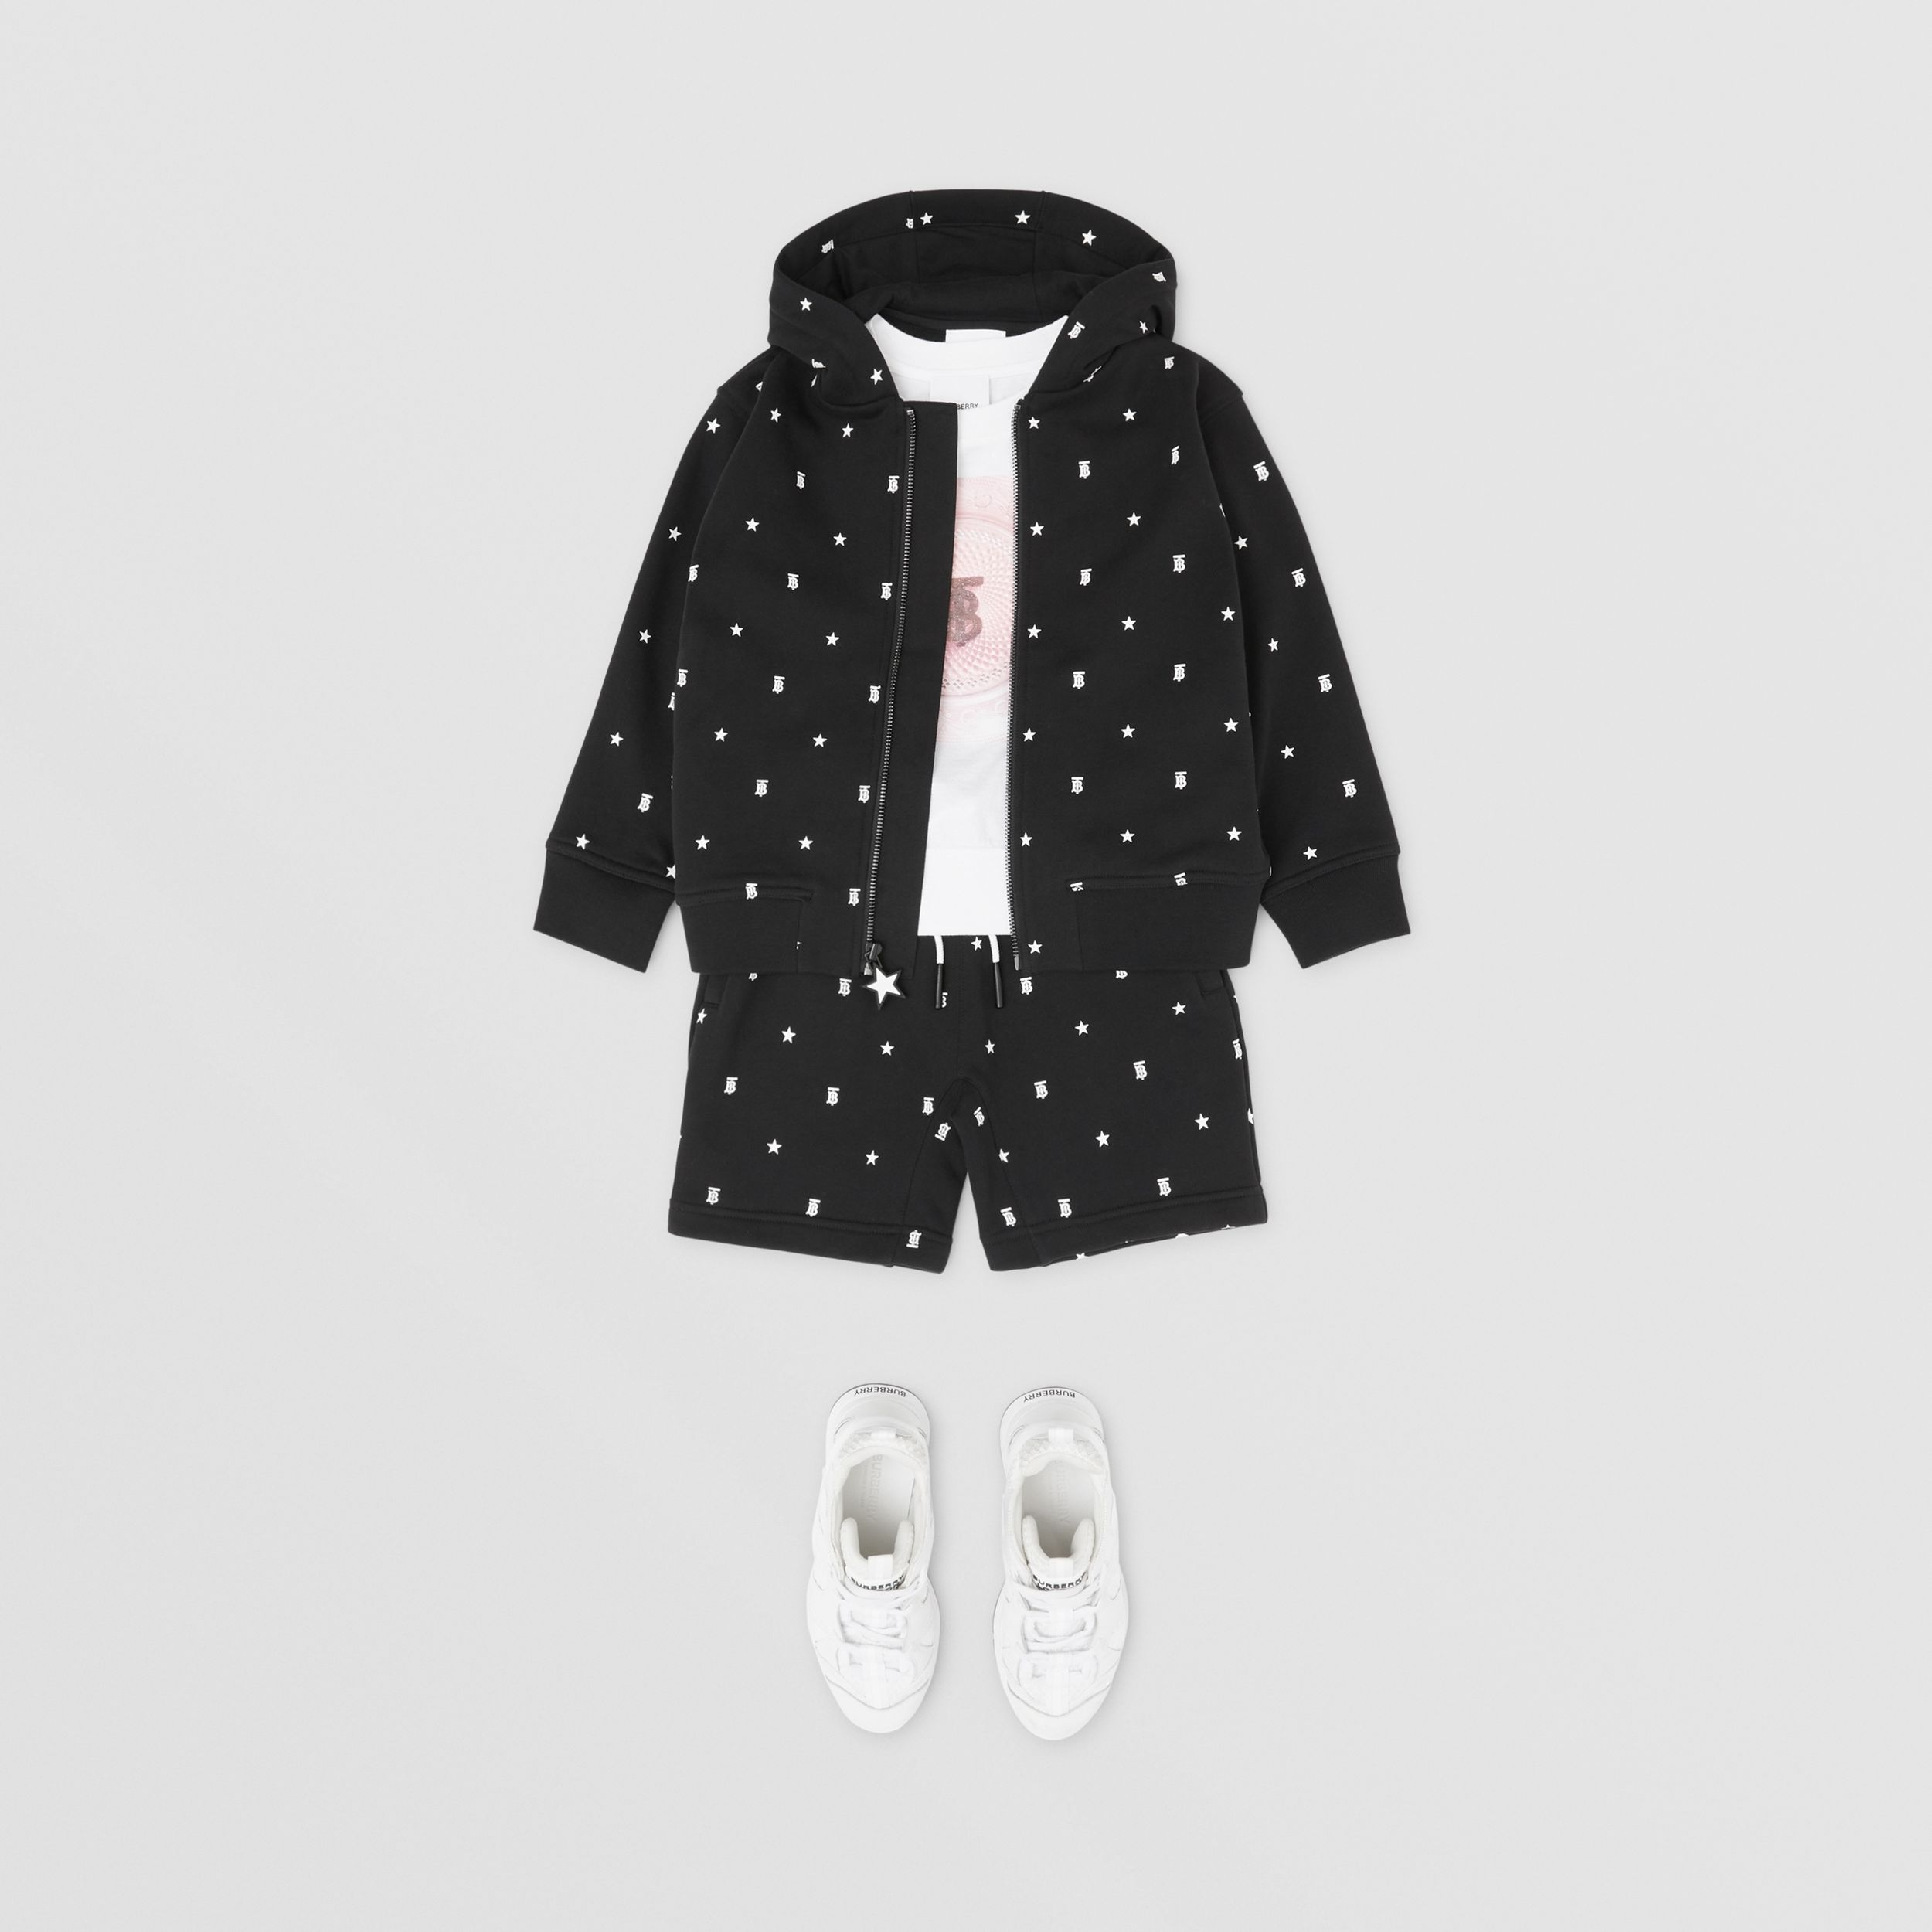 Star and Monogram Motif Cotton Hooded Top in Black | Burberry - 4